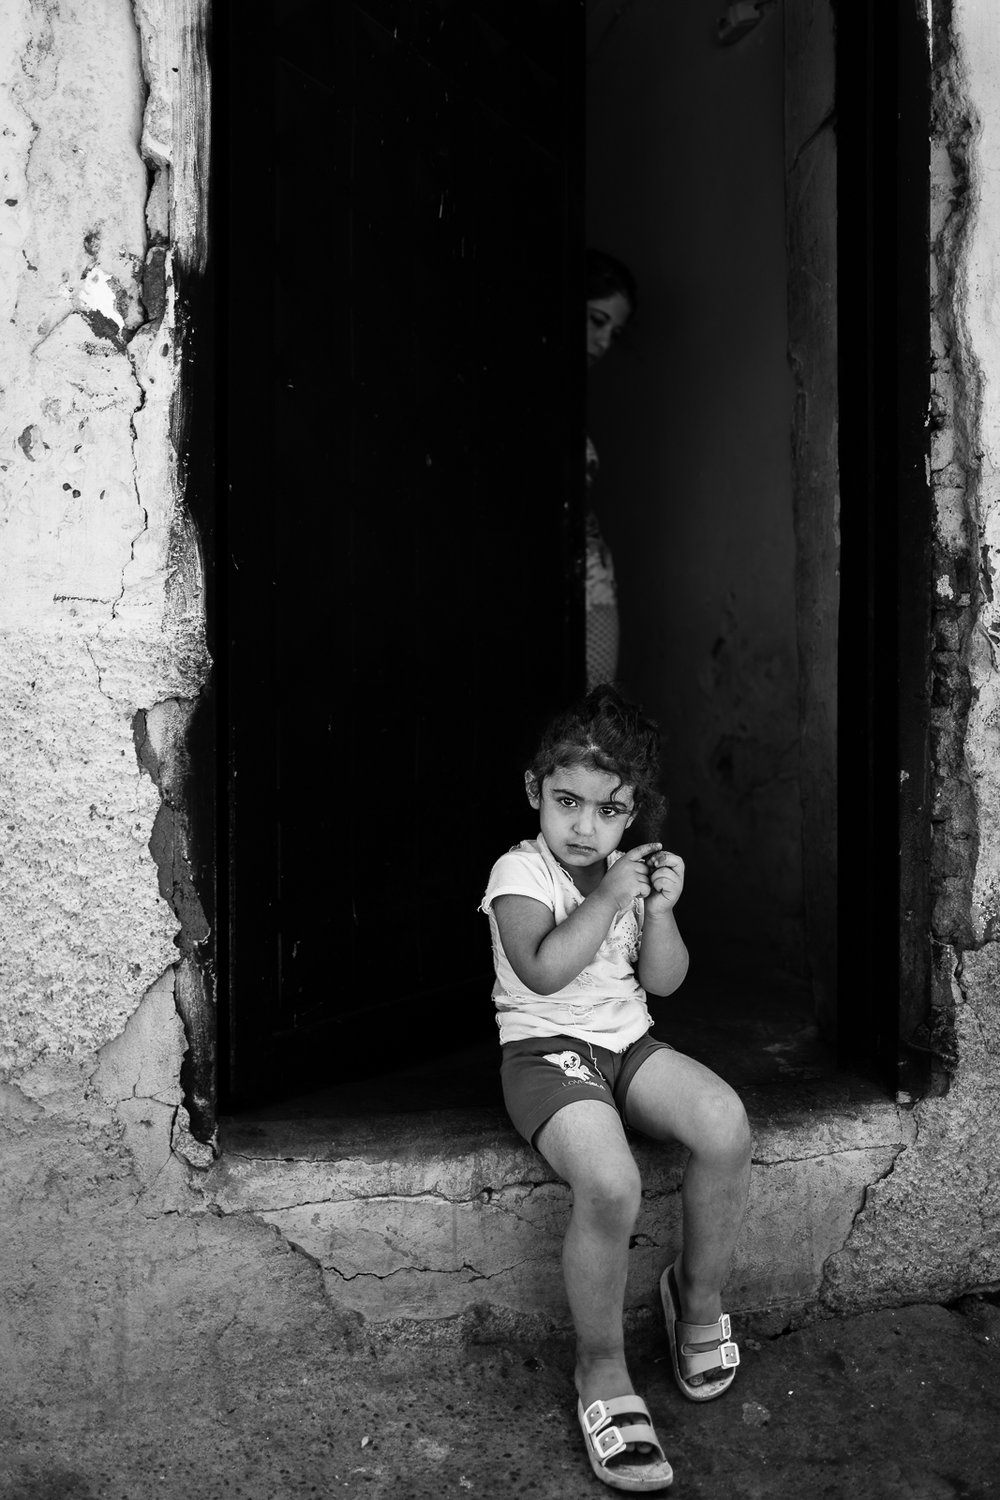 Kurdish girl on her home's door in Diyarbakir (Turkey)